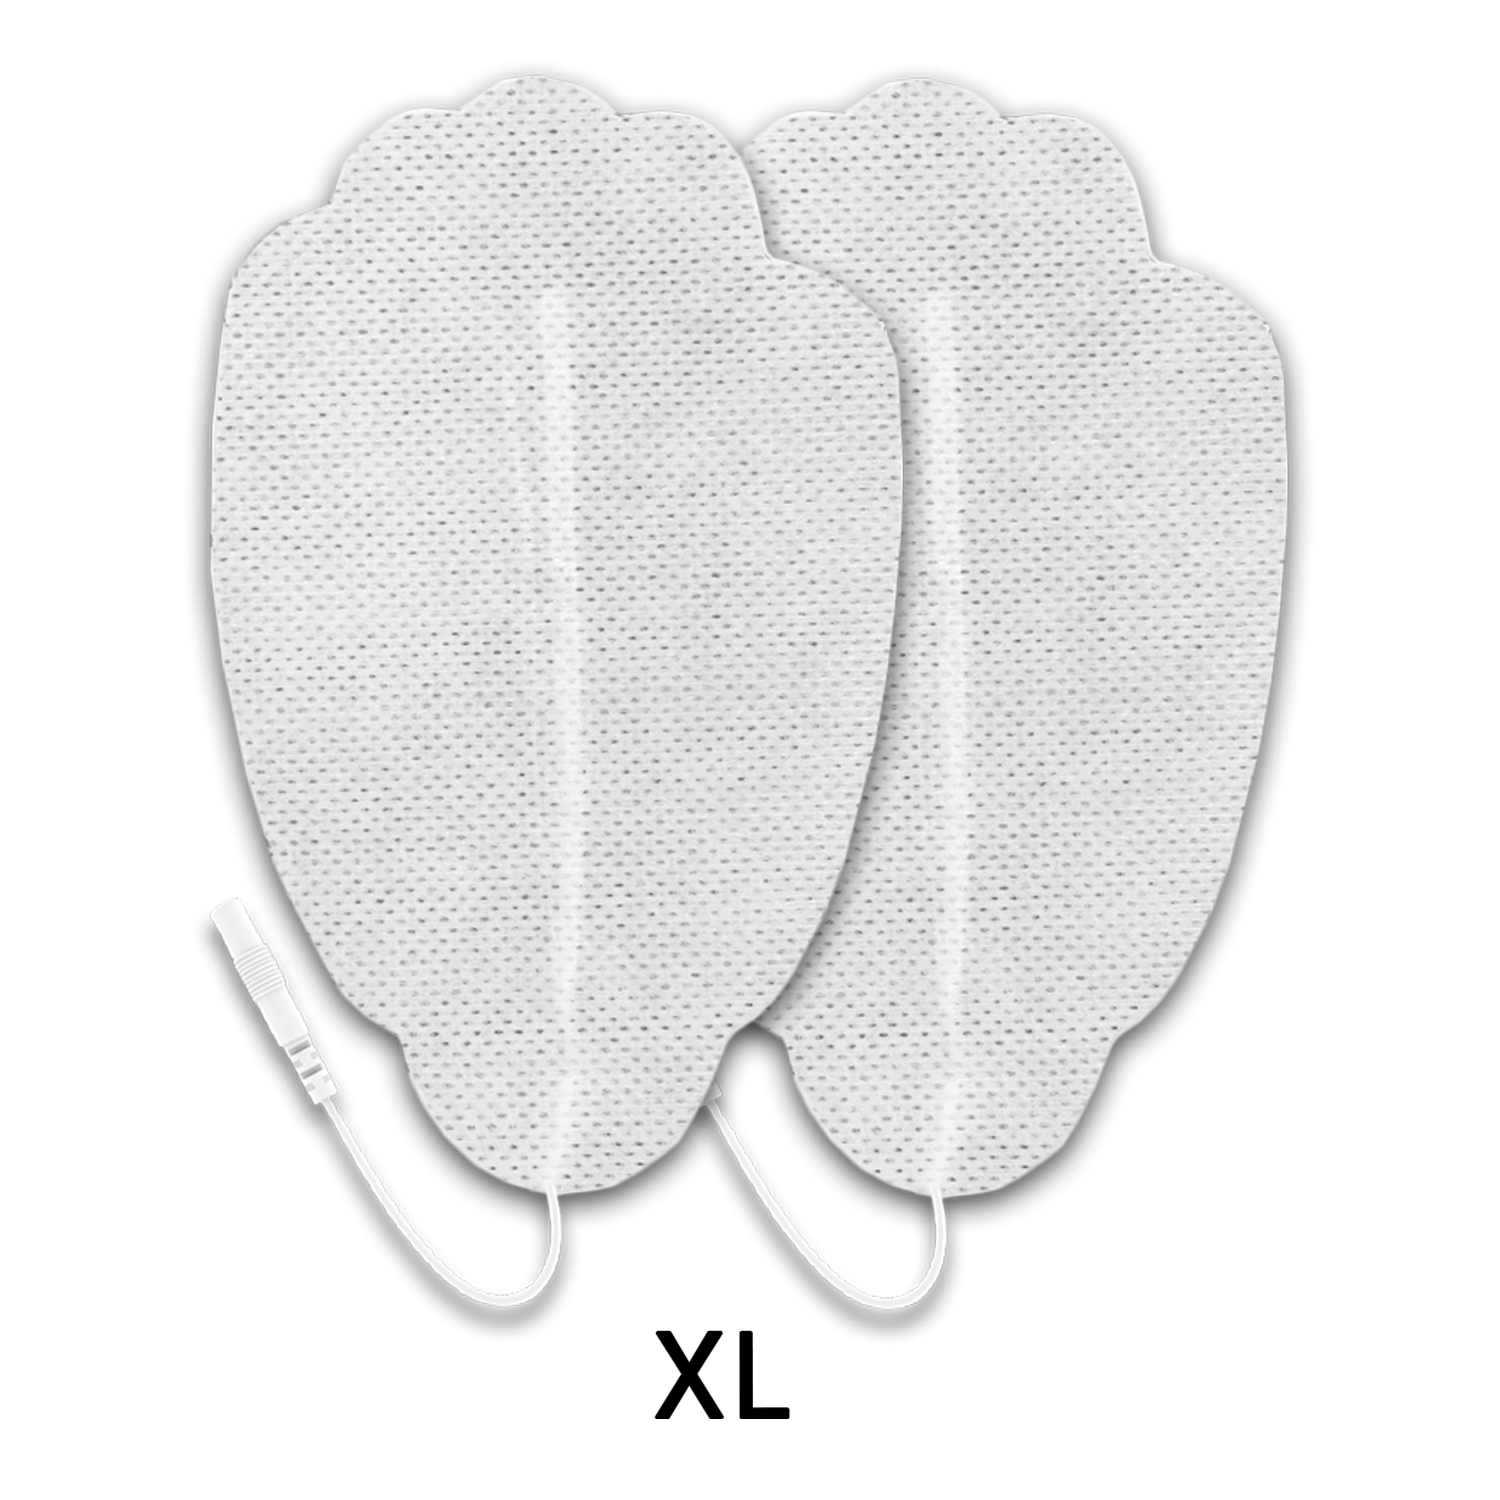 Pair of Pin-Insert XL Hand-Shaped Pads - HealthmateForever